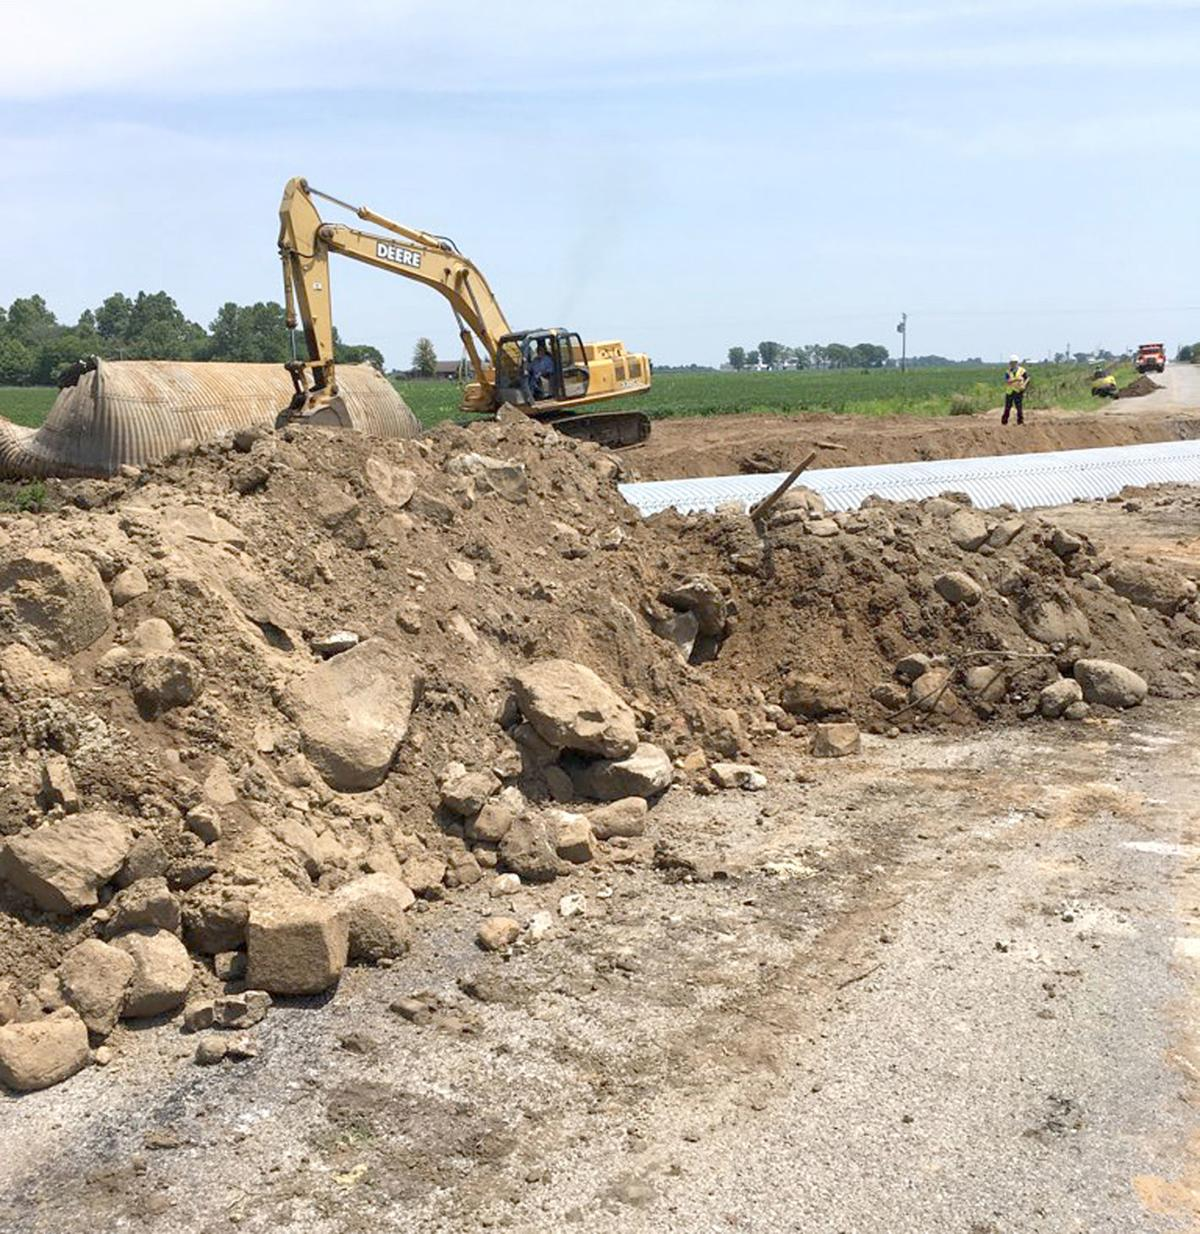 Phone, internet and cable service in White County to be